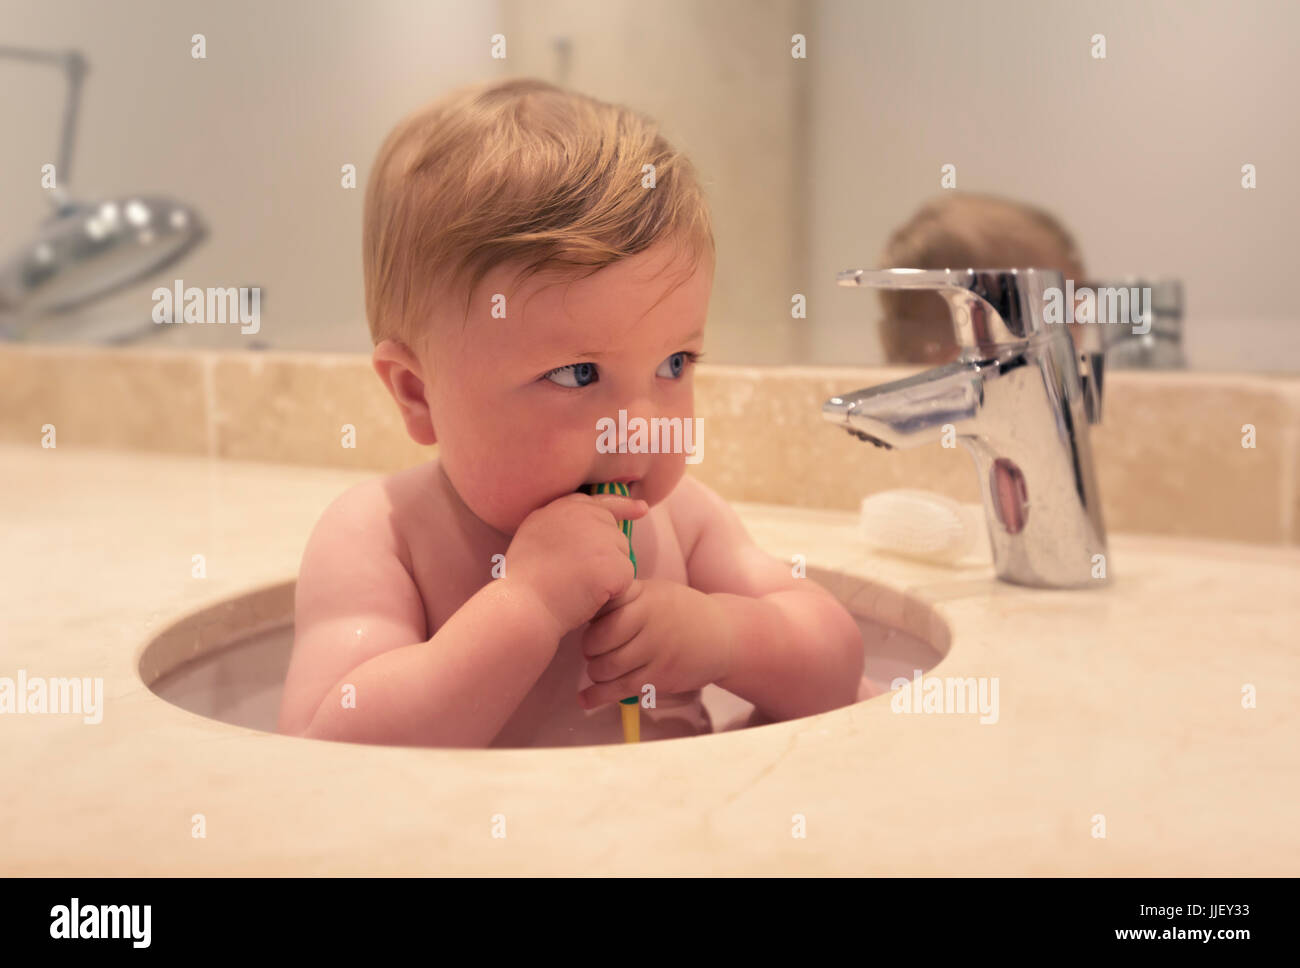 Baby boy sitting in a sink brushing his teeth Stock Photo